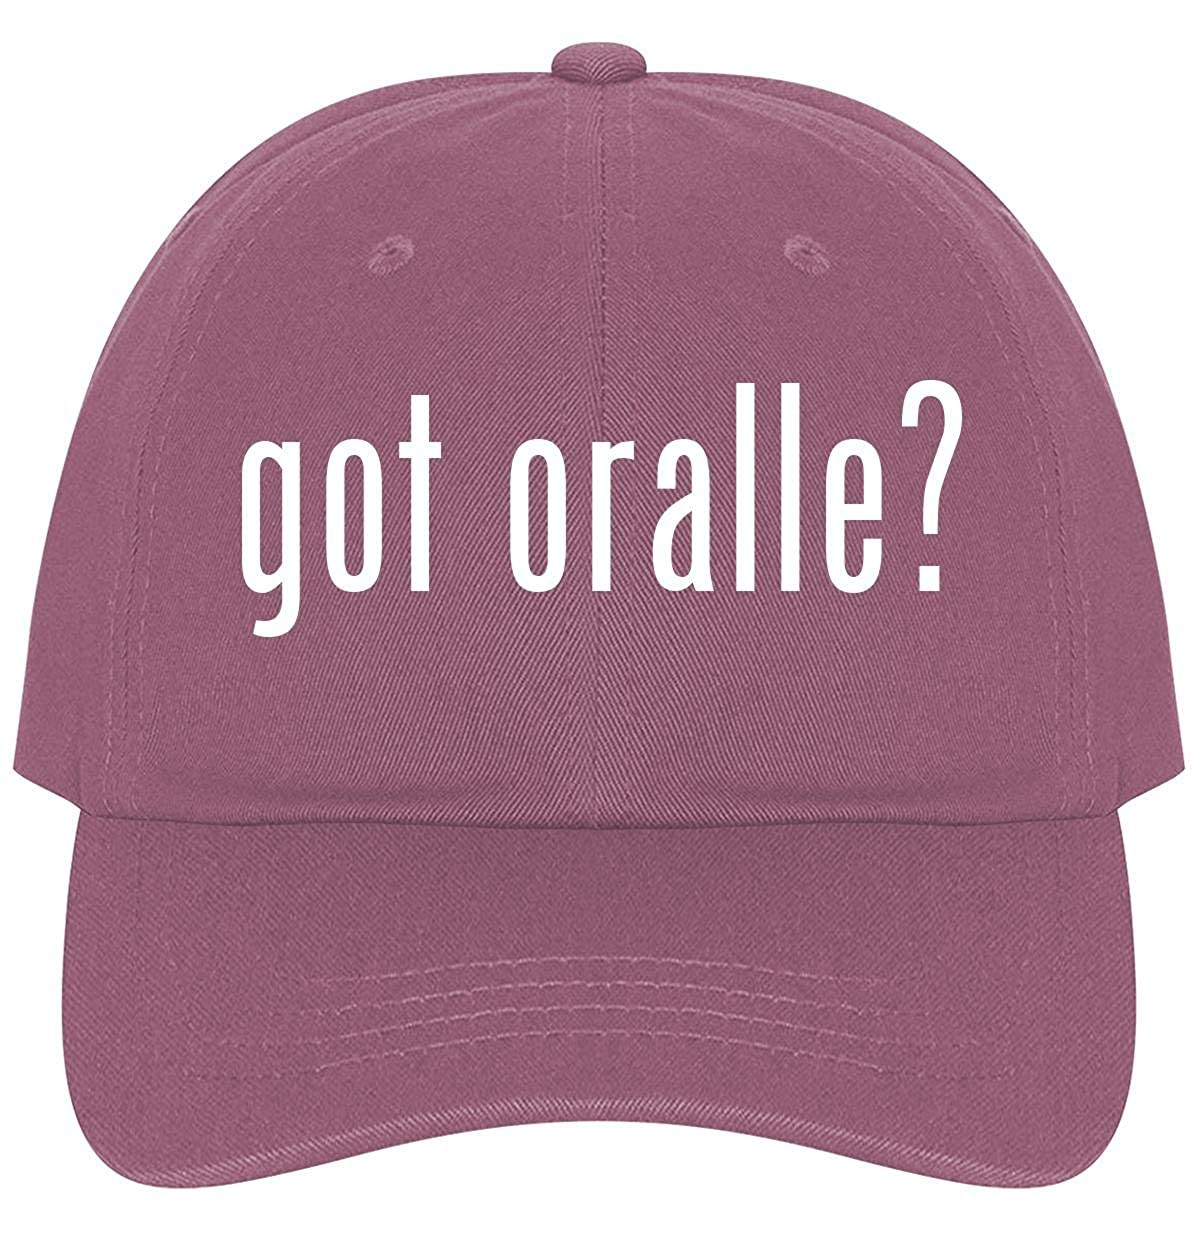 The Town Butler got Oralle? - A Nice Comfortable Adjustable Dad Hat Cap